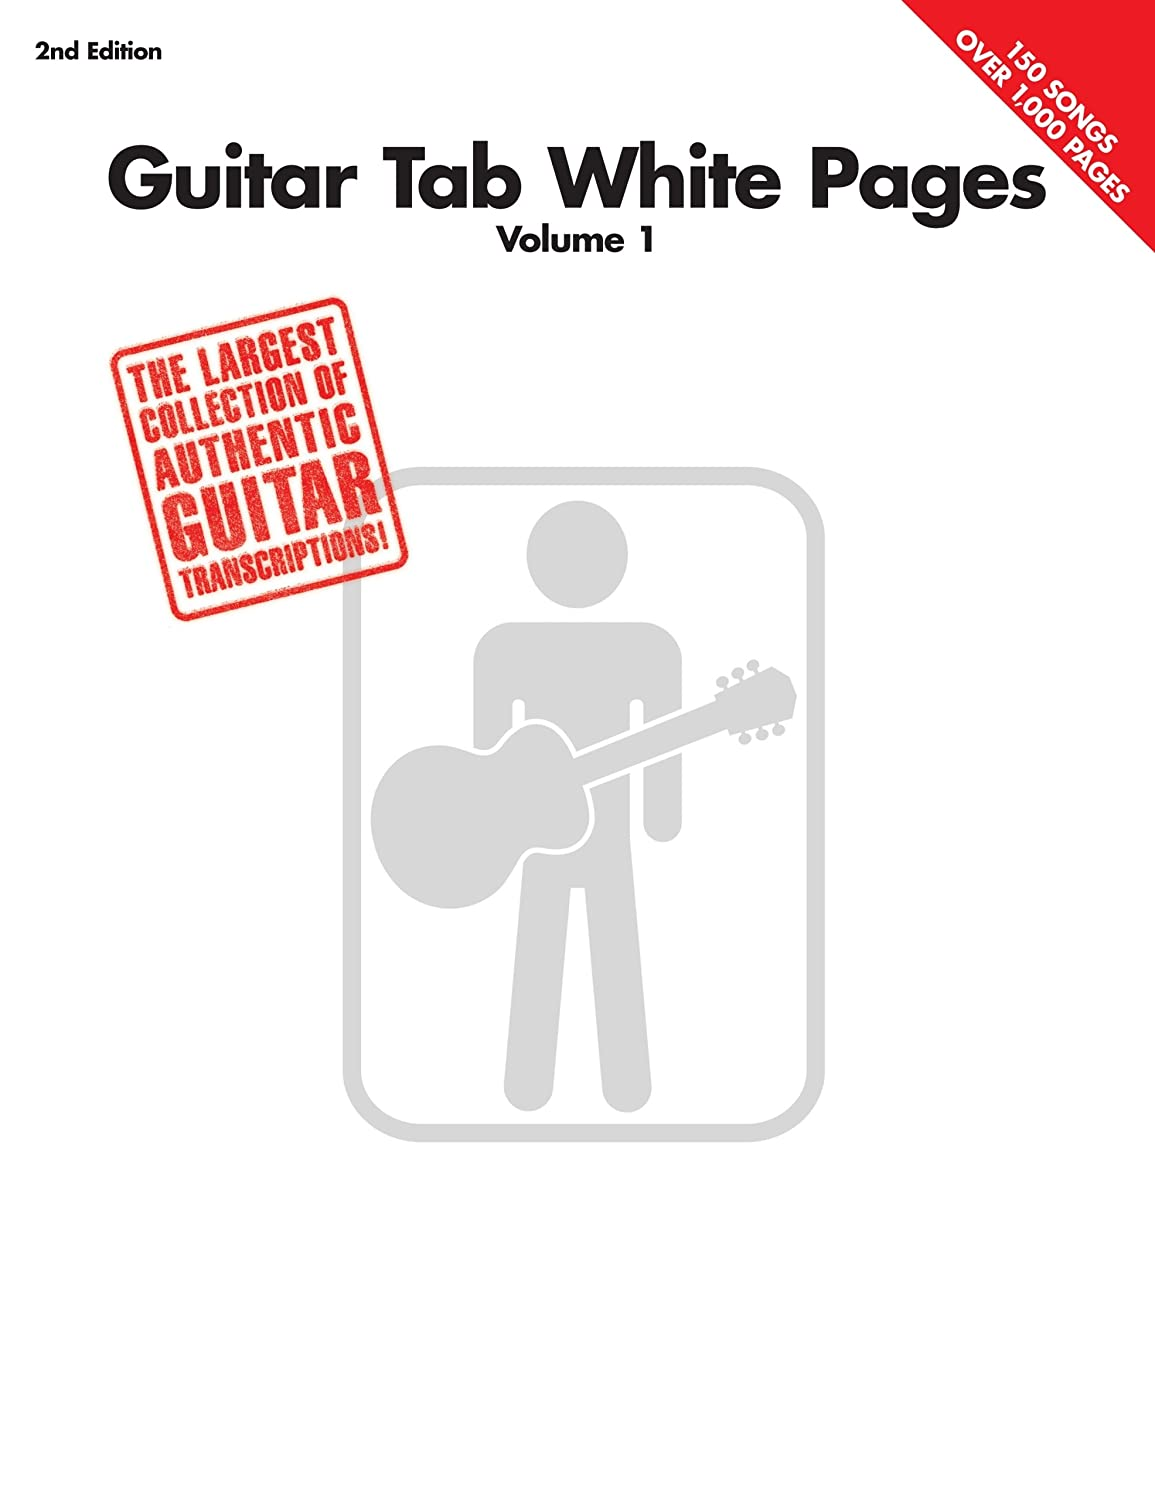 Guitar Tab White Pages - Volume 1 (English Edition) eBook: Hal ...